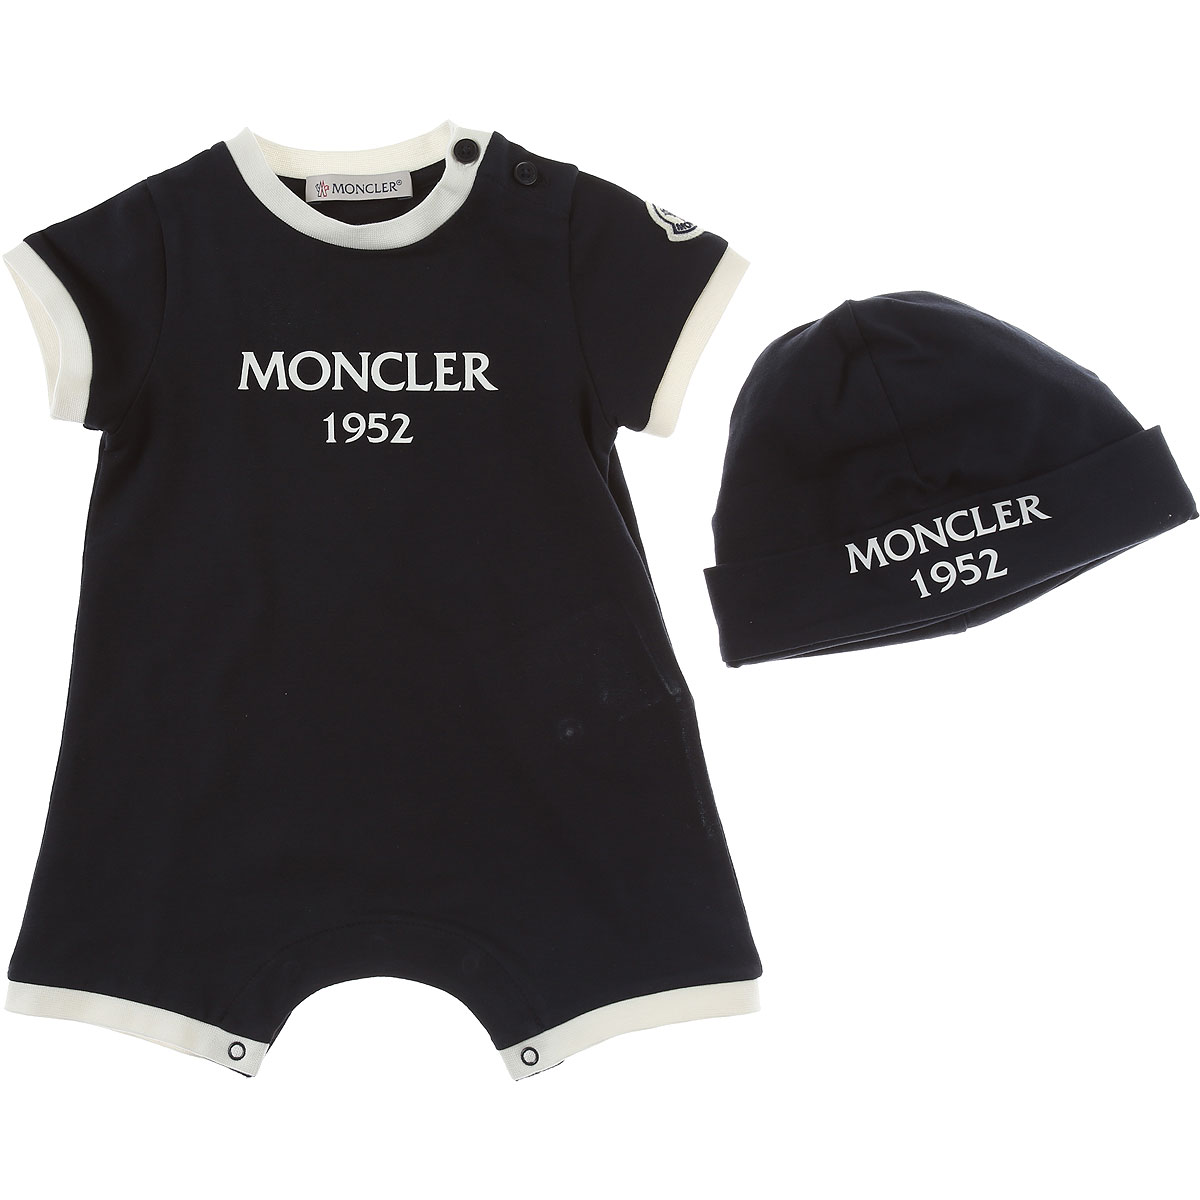 9047f3c9c Baby Boy Clothing Moncler, Style code: 8813706-8790a-778